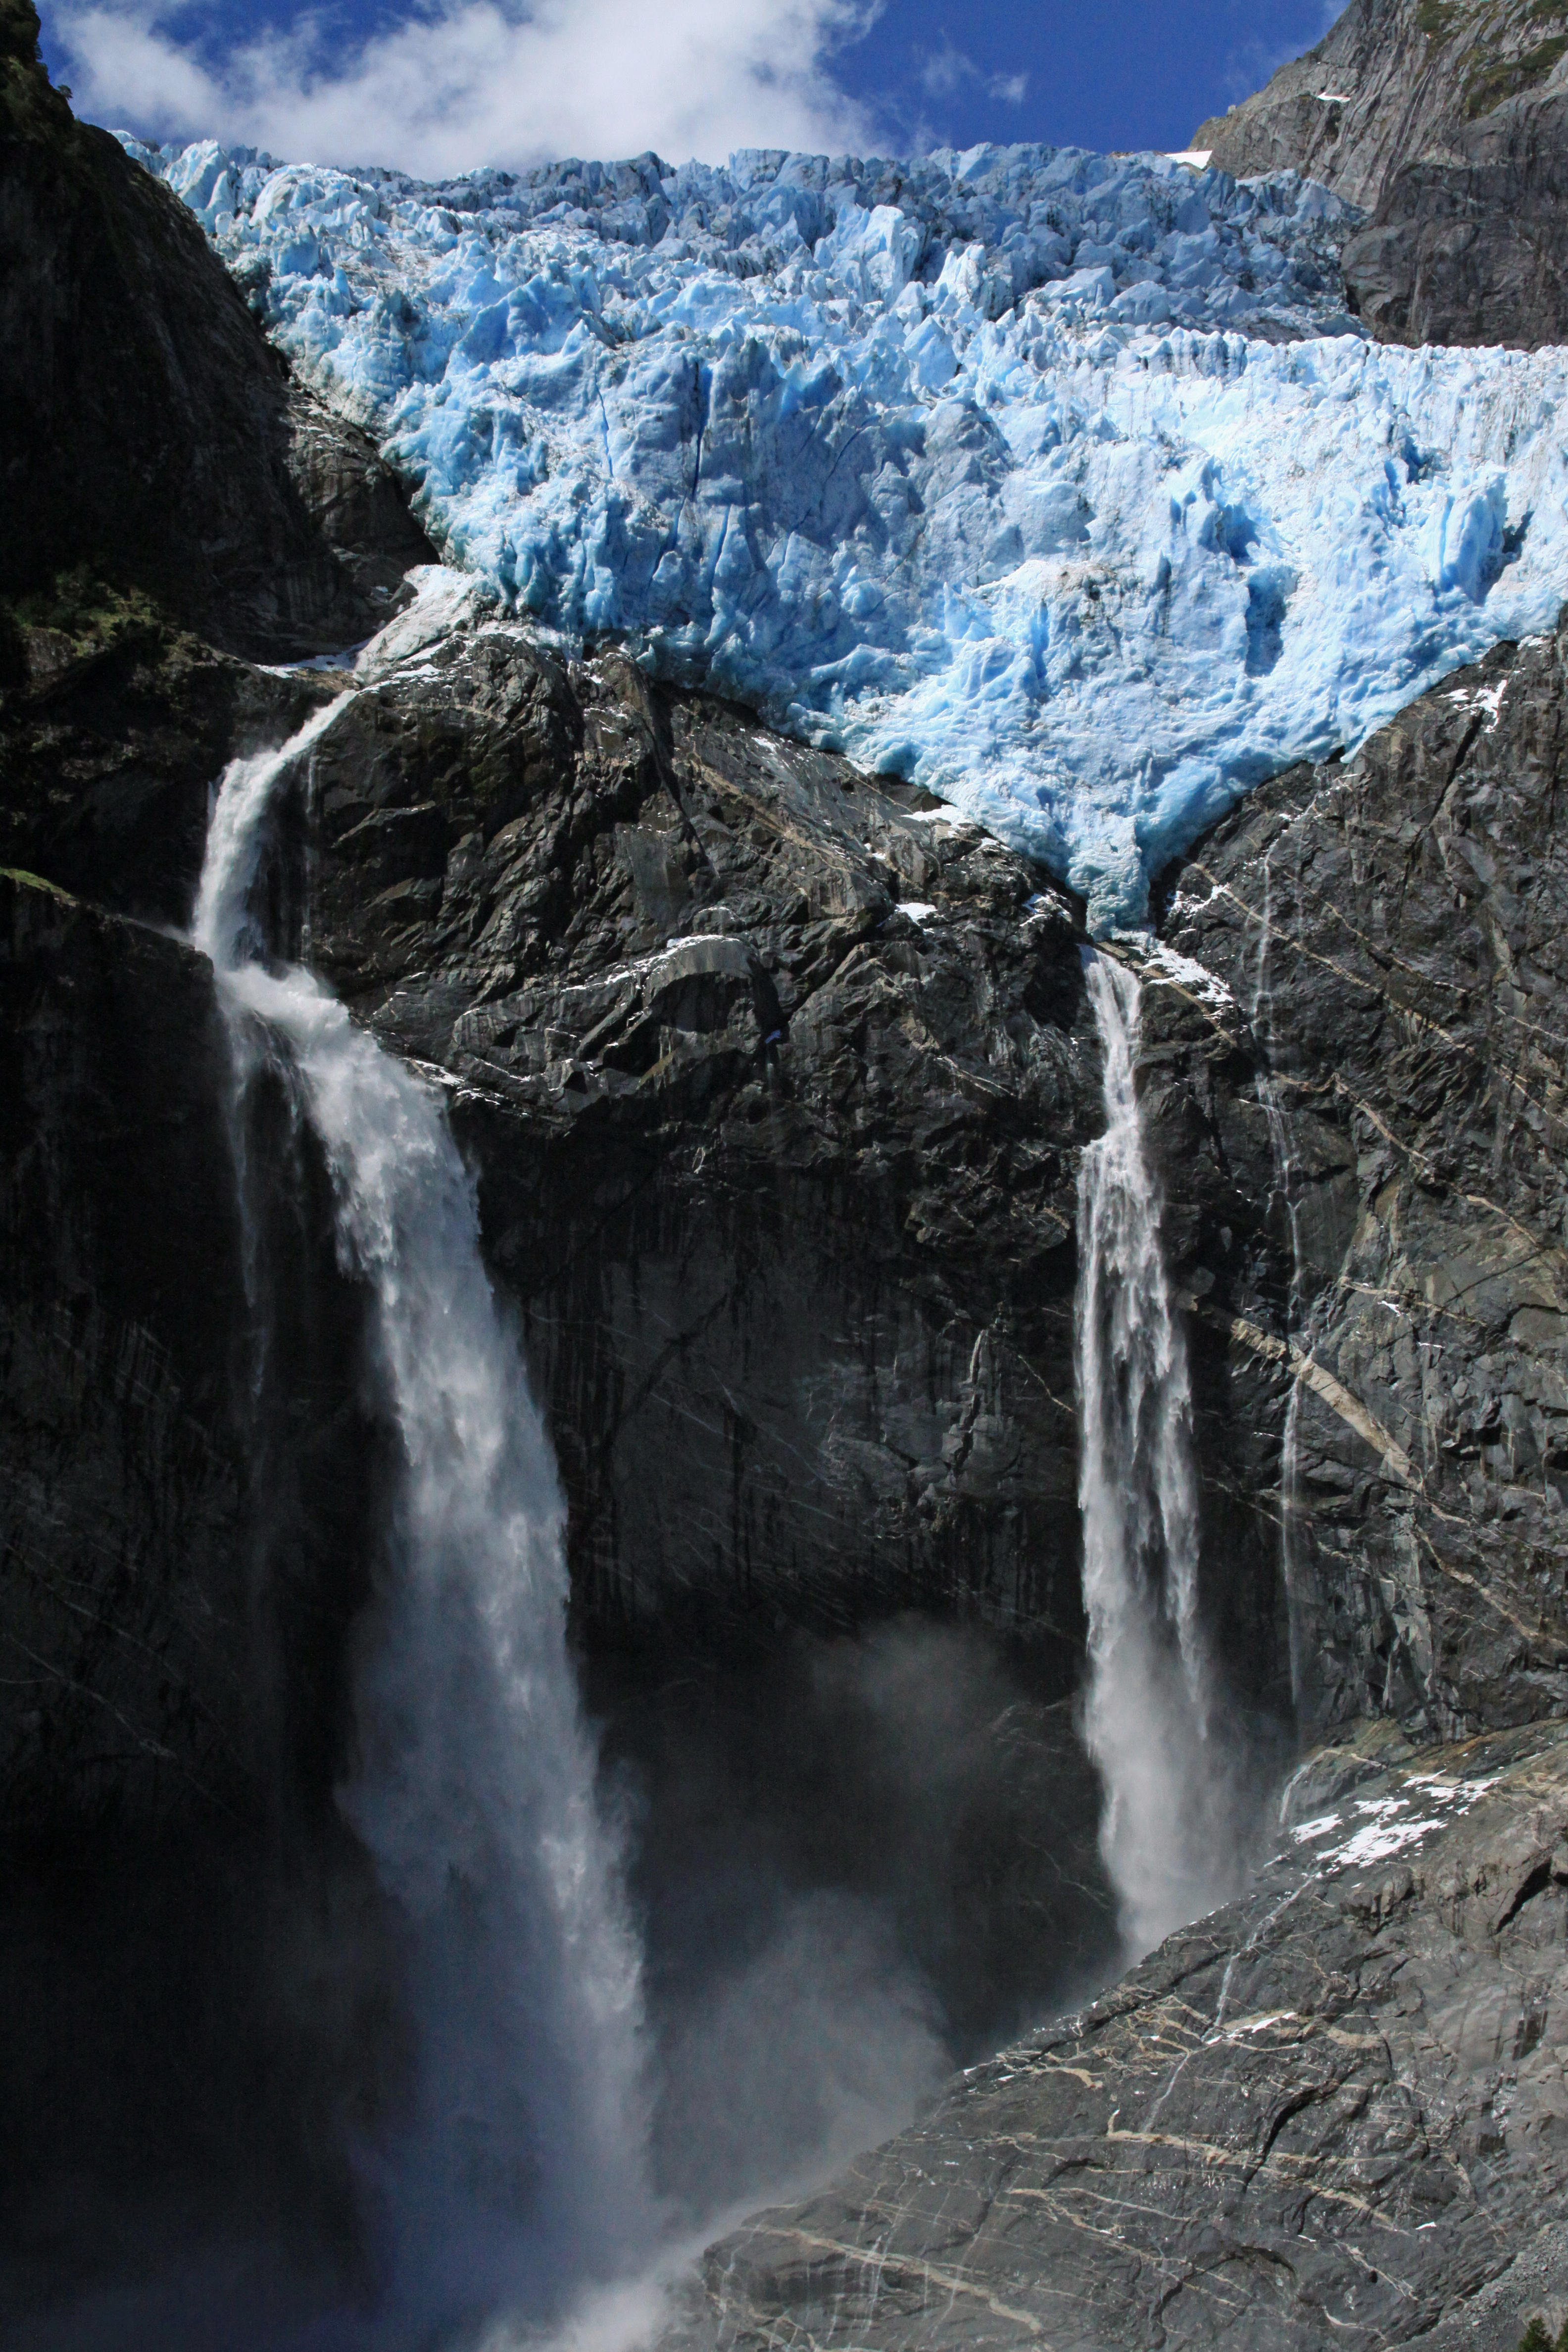 Beyond the igneous rock slope, to a pair of plunge falls and a cascade/ribbon falls, descending from the blue hue terminus snout ice, of the Ventisquero Colgante.